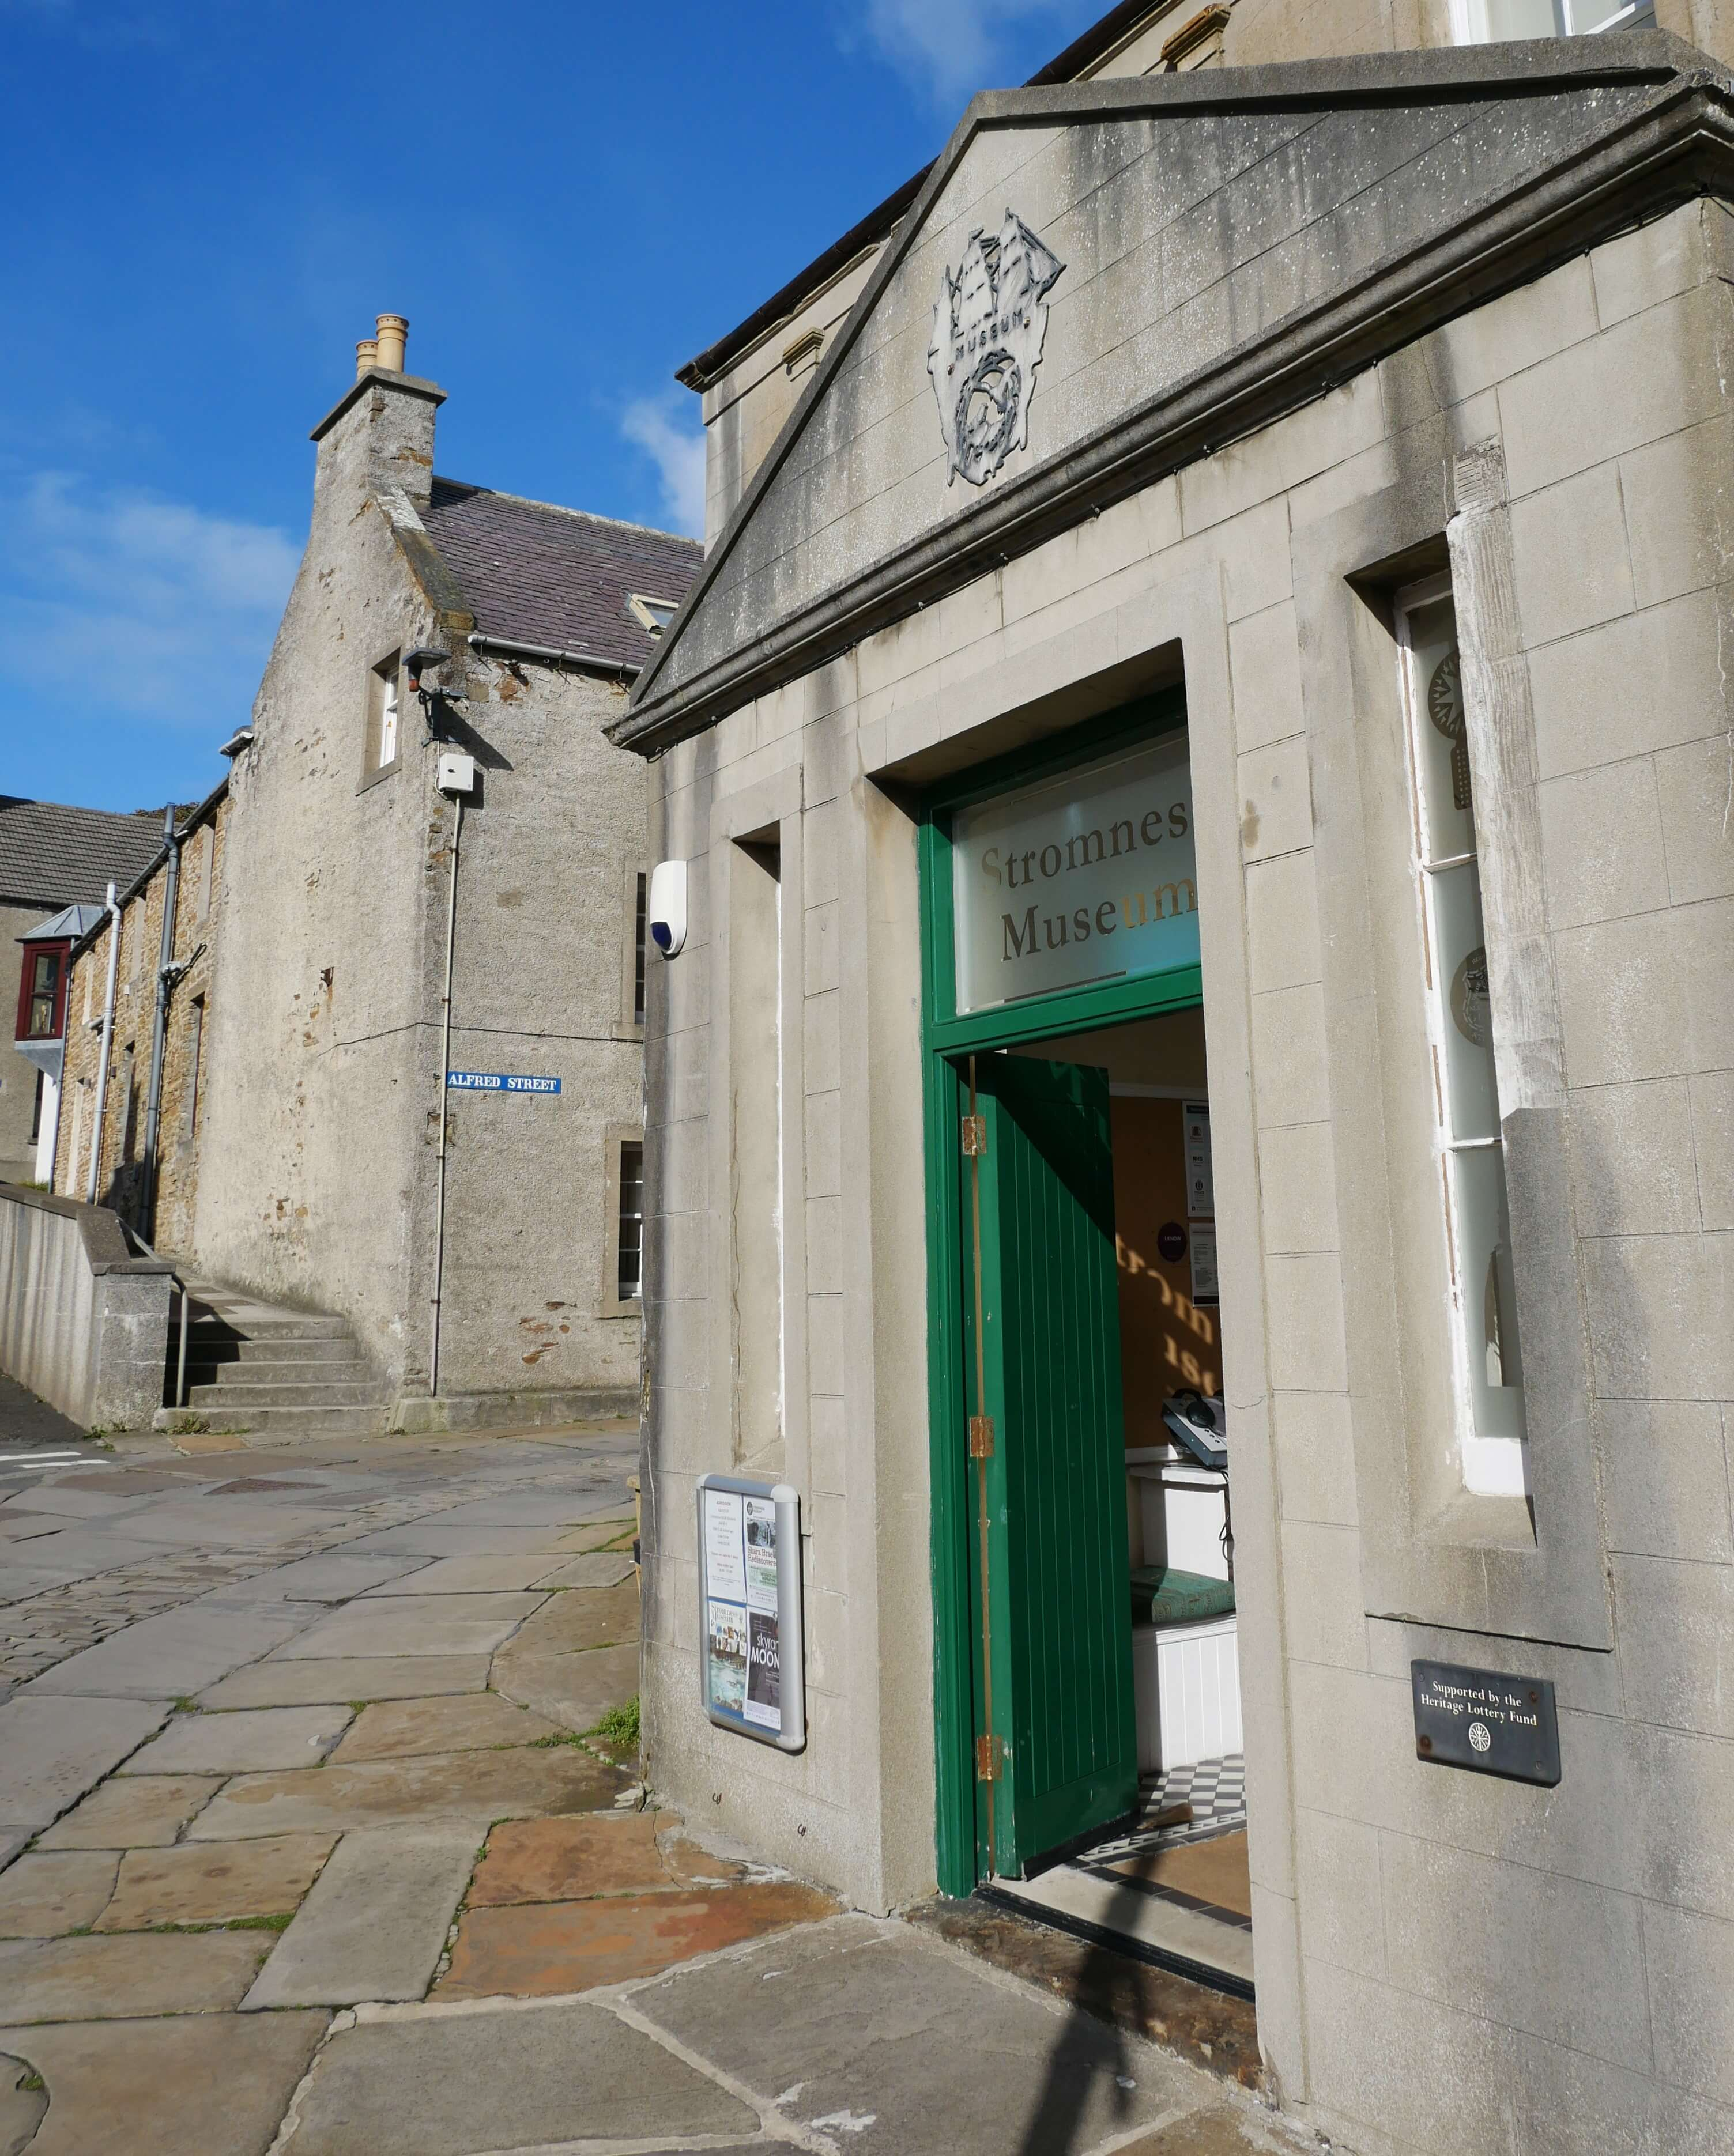 Stromness Museum, Stromness, Orkney Islands, Scotland, UK